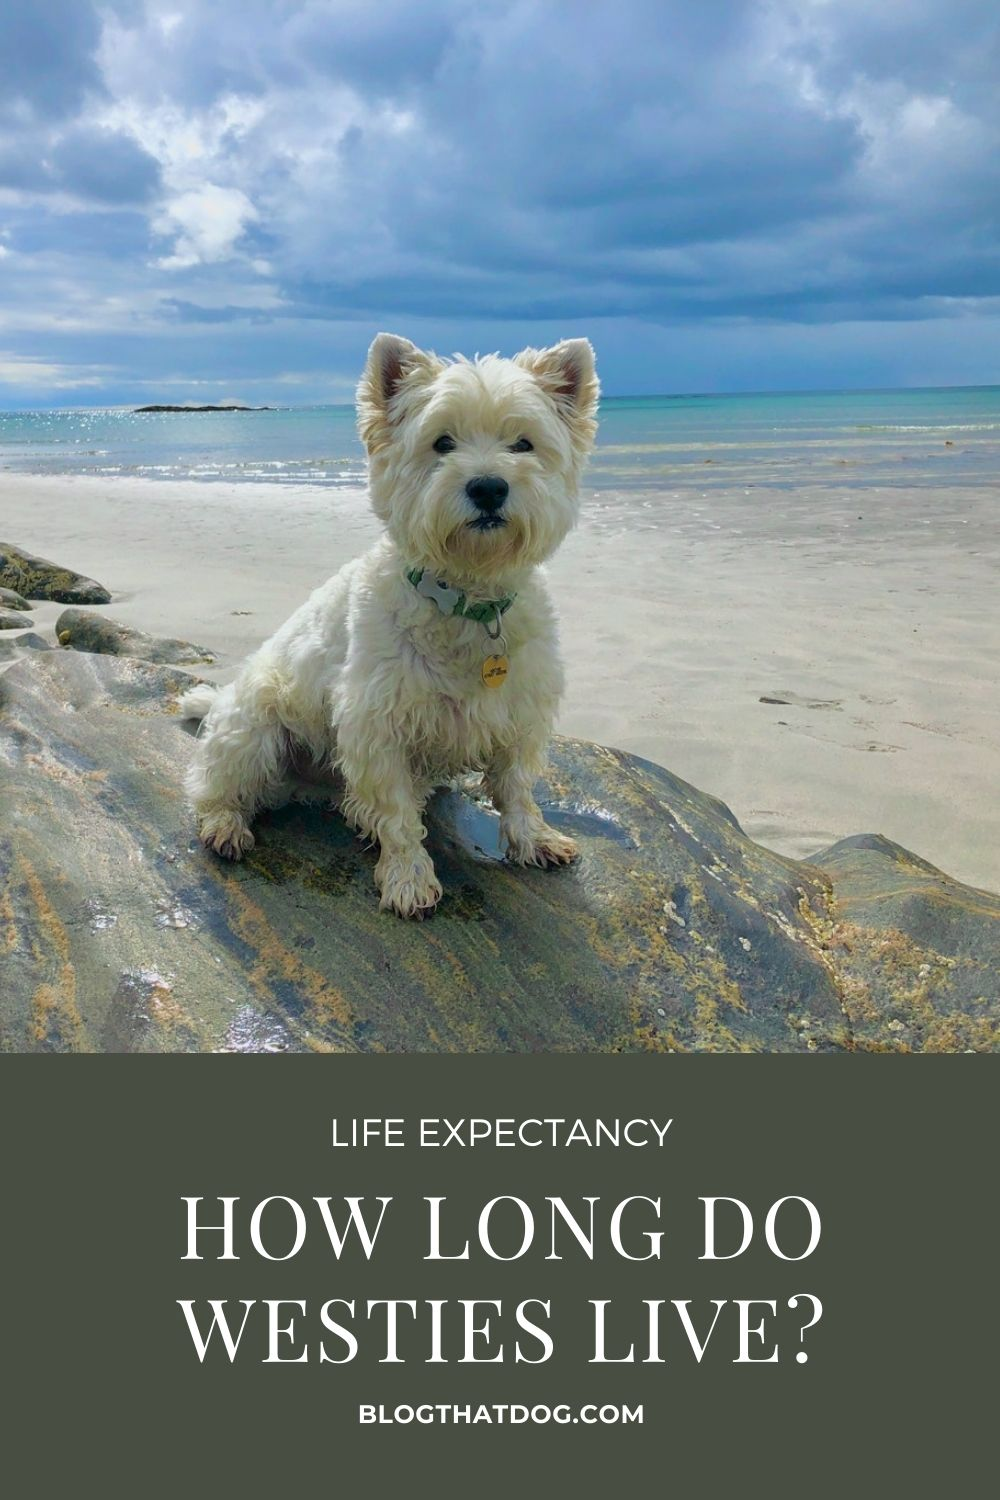 How long do westies live for?